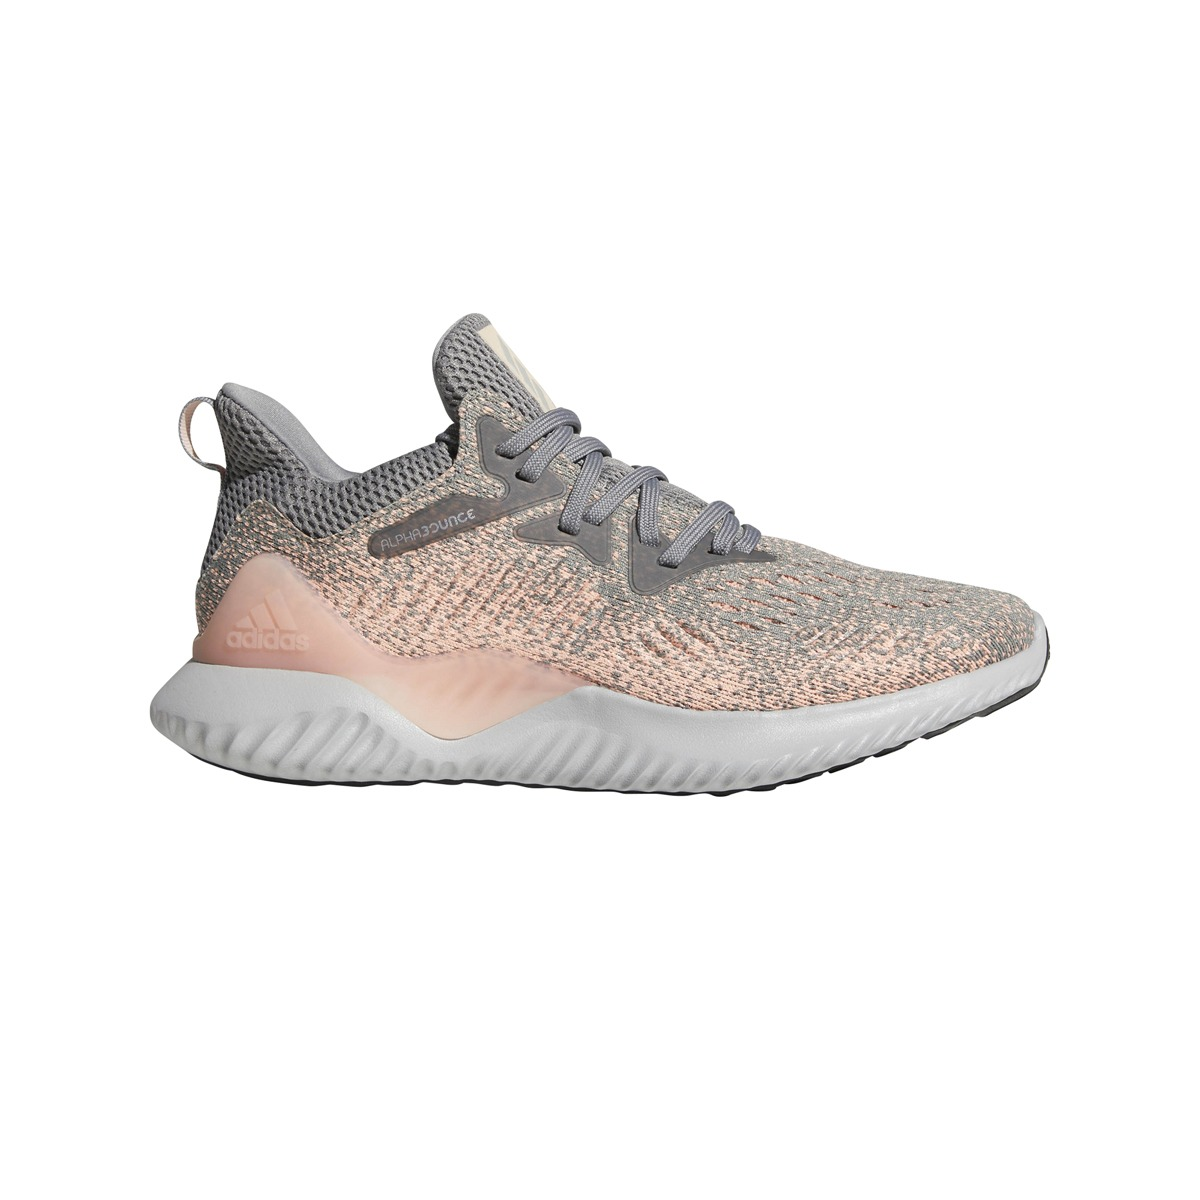 on sale 286db d2218 zapatillas adidas running alphabounce beyond w mujer sagr. Cargando zoom.